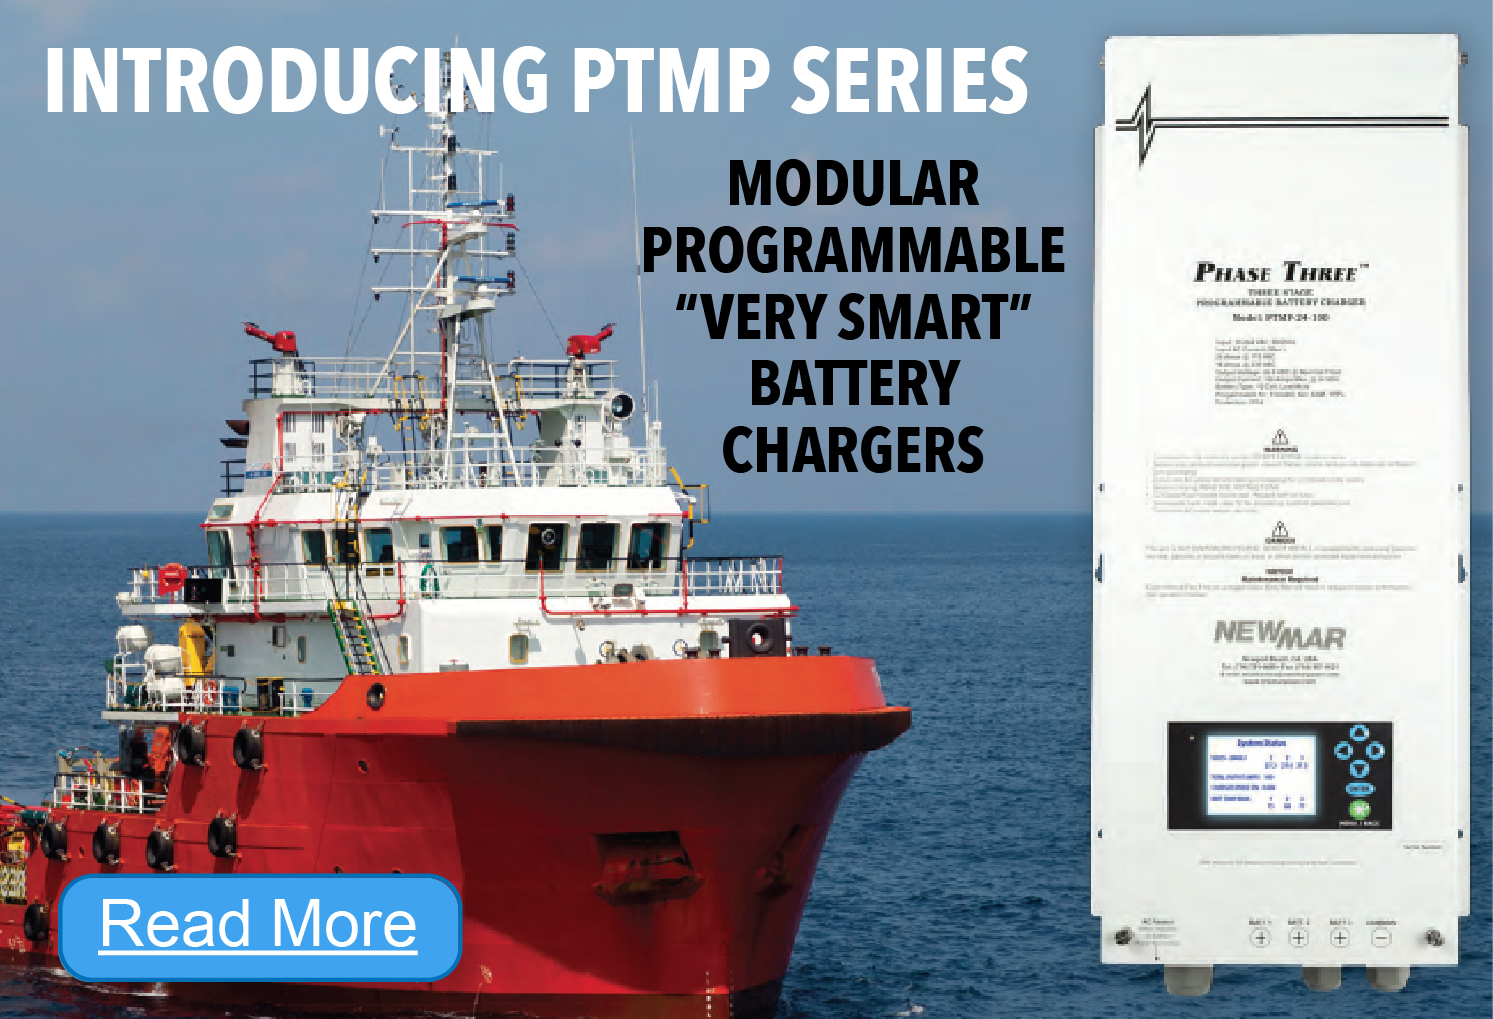 New Product Spotlight: Phase Three Modular & Programmable Battery Charger, 24V DC, 100 - 150 Amps